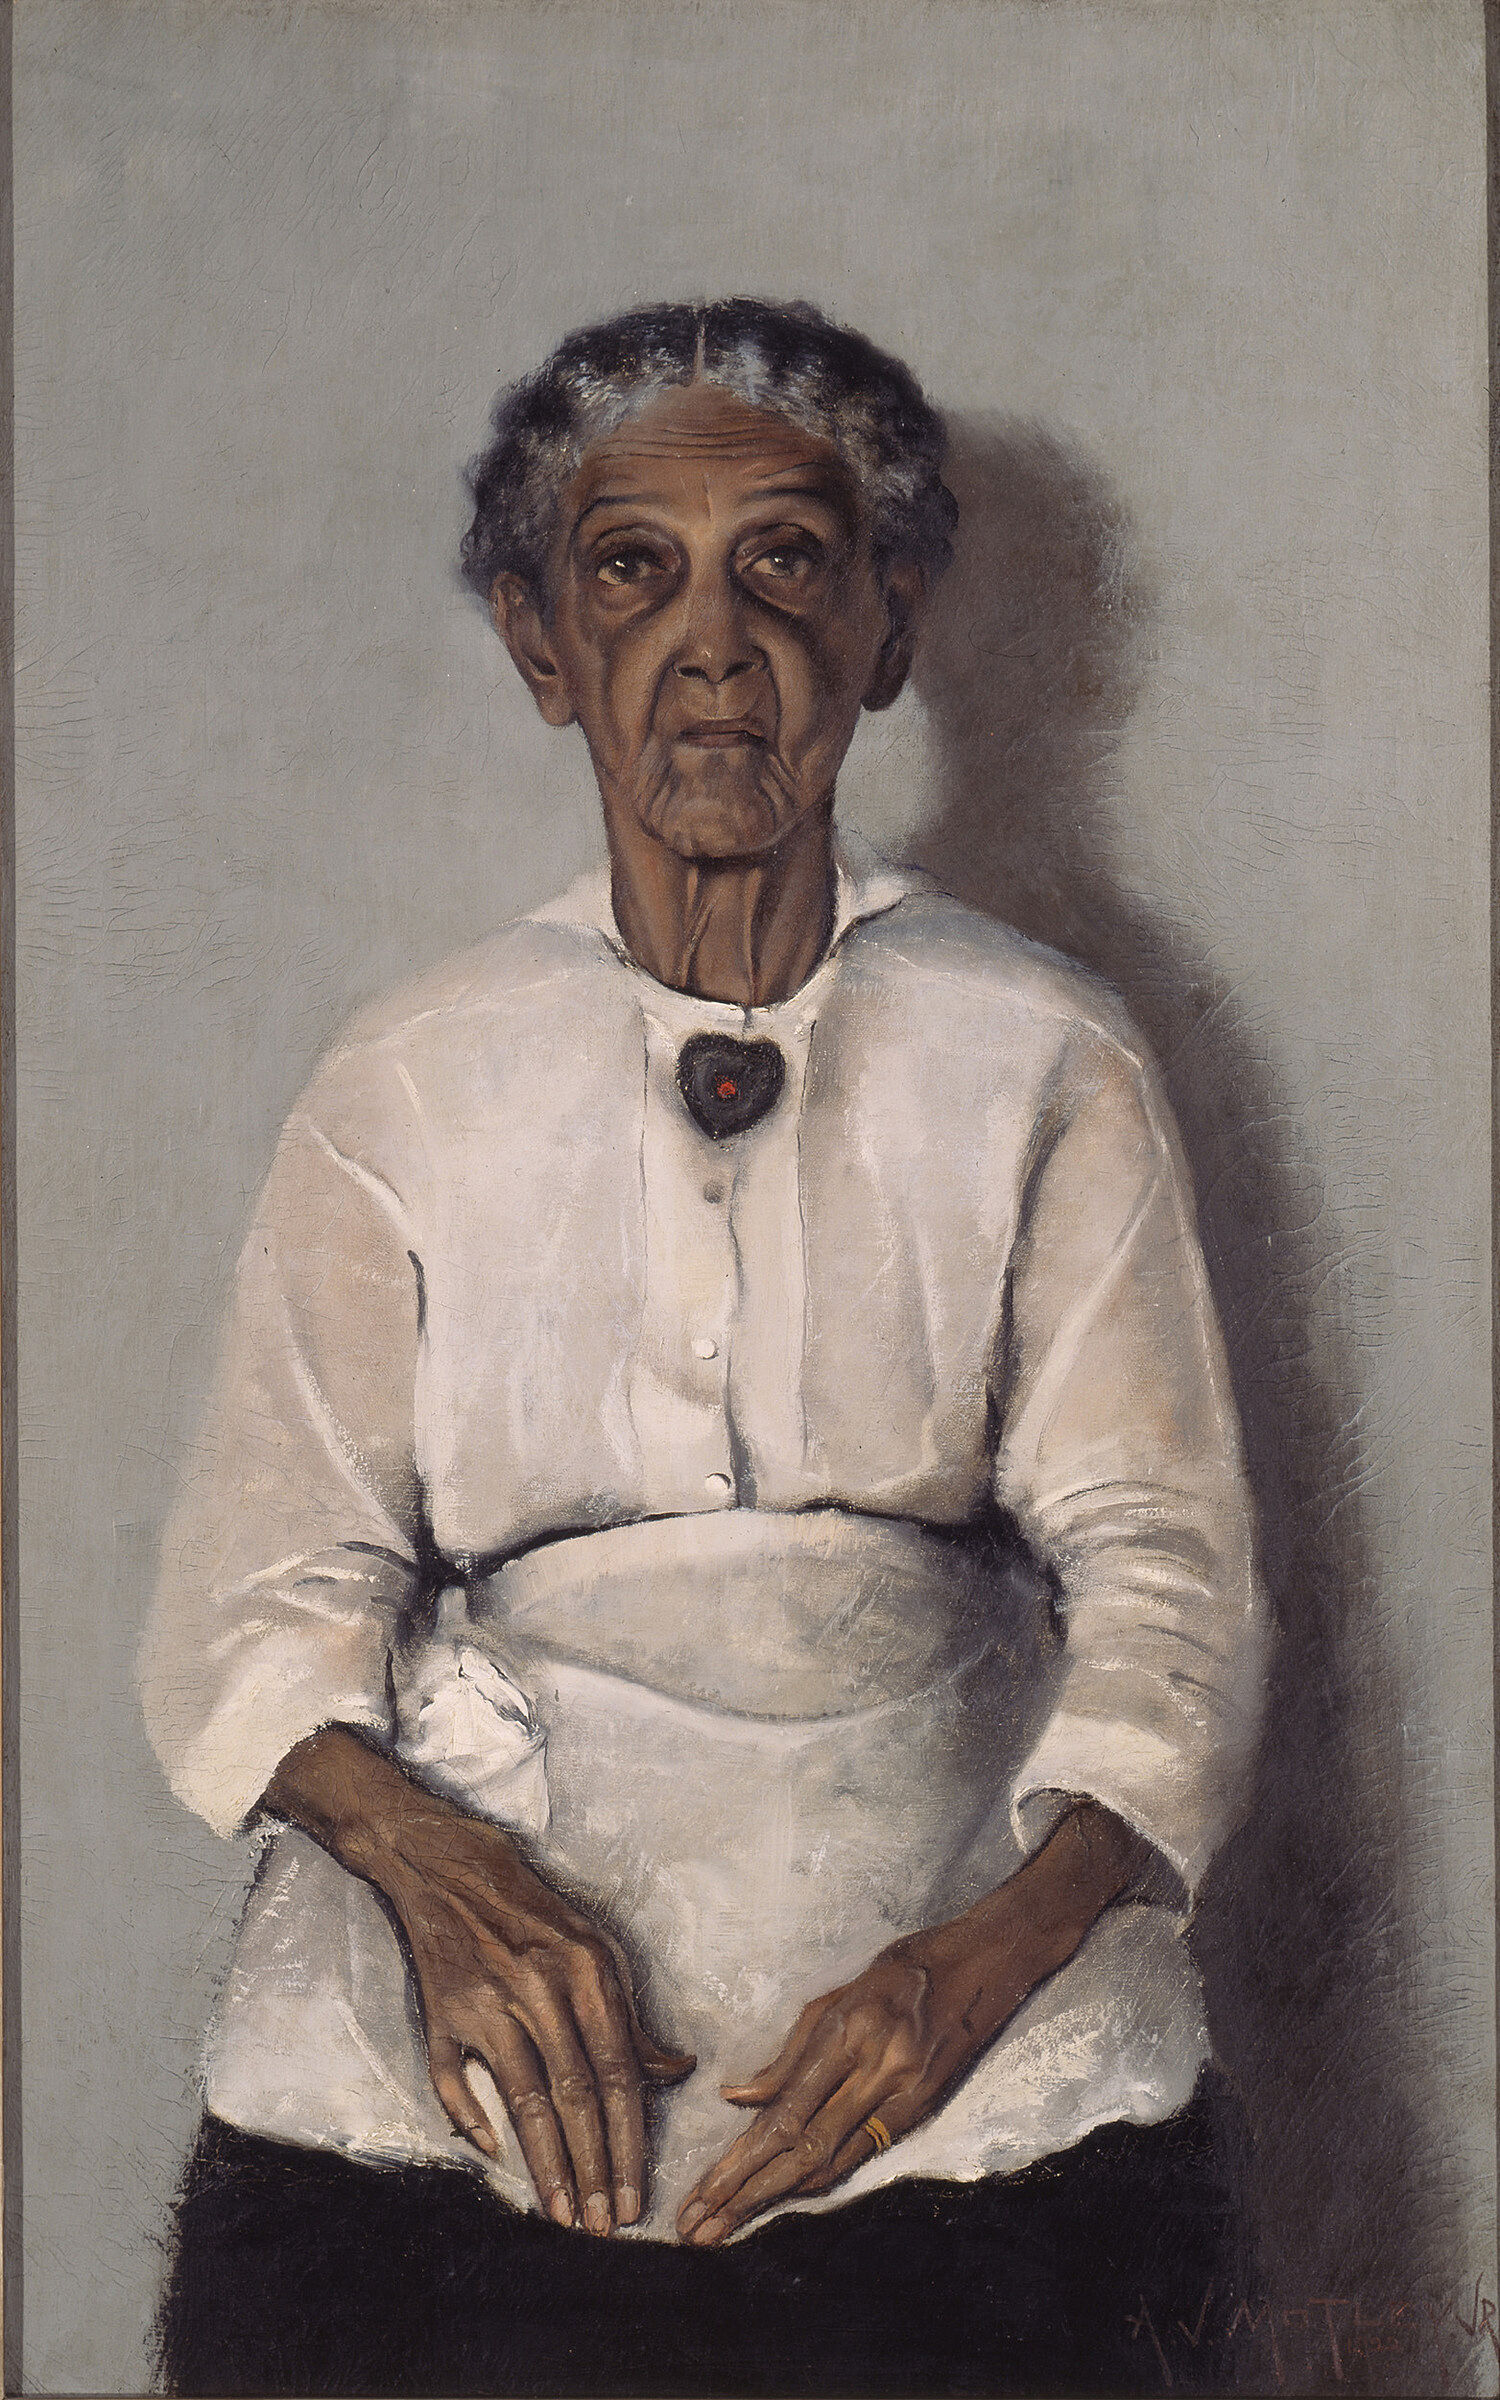 A painting of a grandmother in a white shirt.